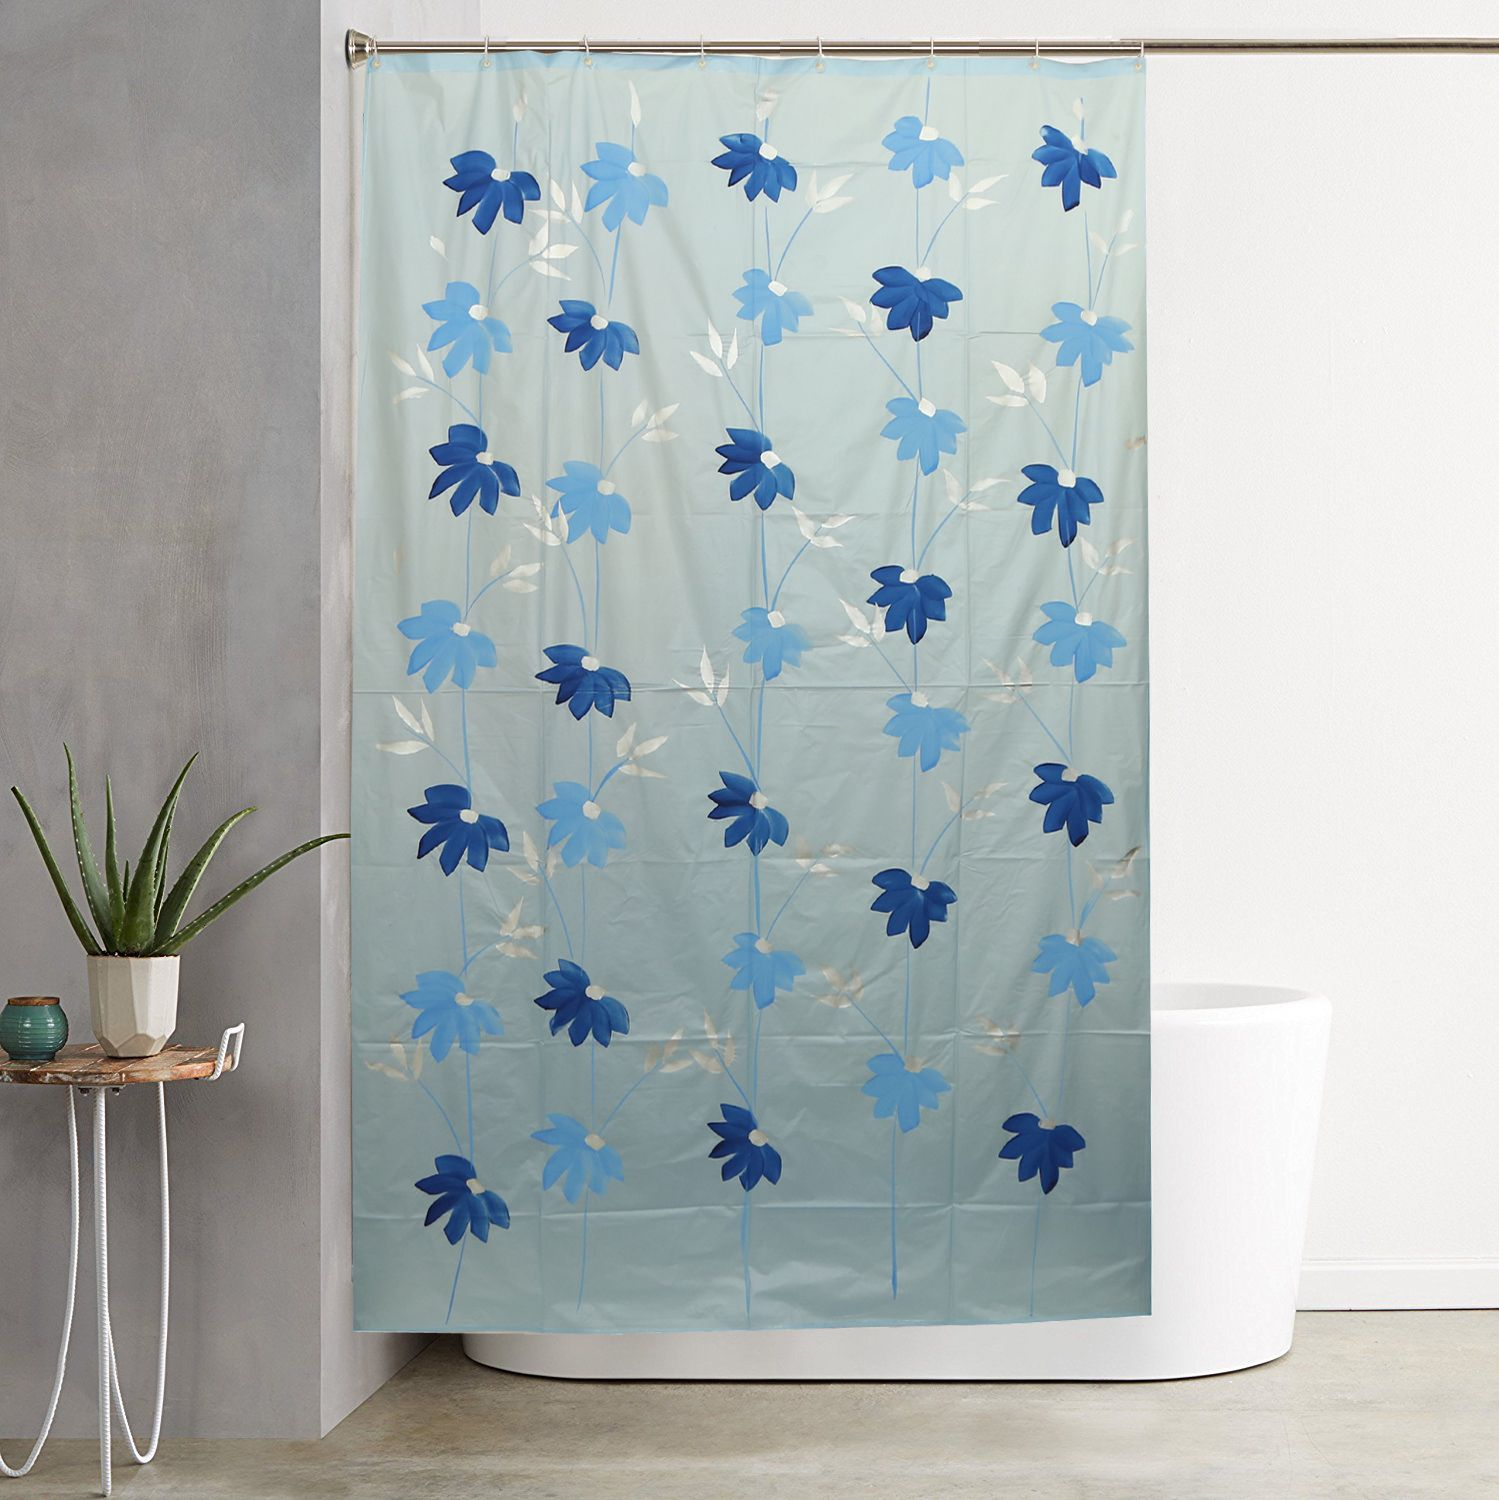 Kuber Industries Skyblue Floral Design Pvc Premium Shower Curtain 7 Feet 8454 Inches 8 Hooks Shwc010 448111 L